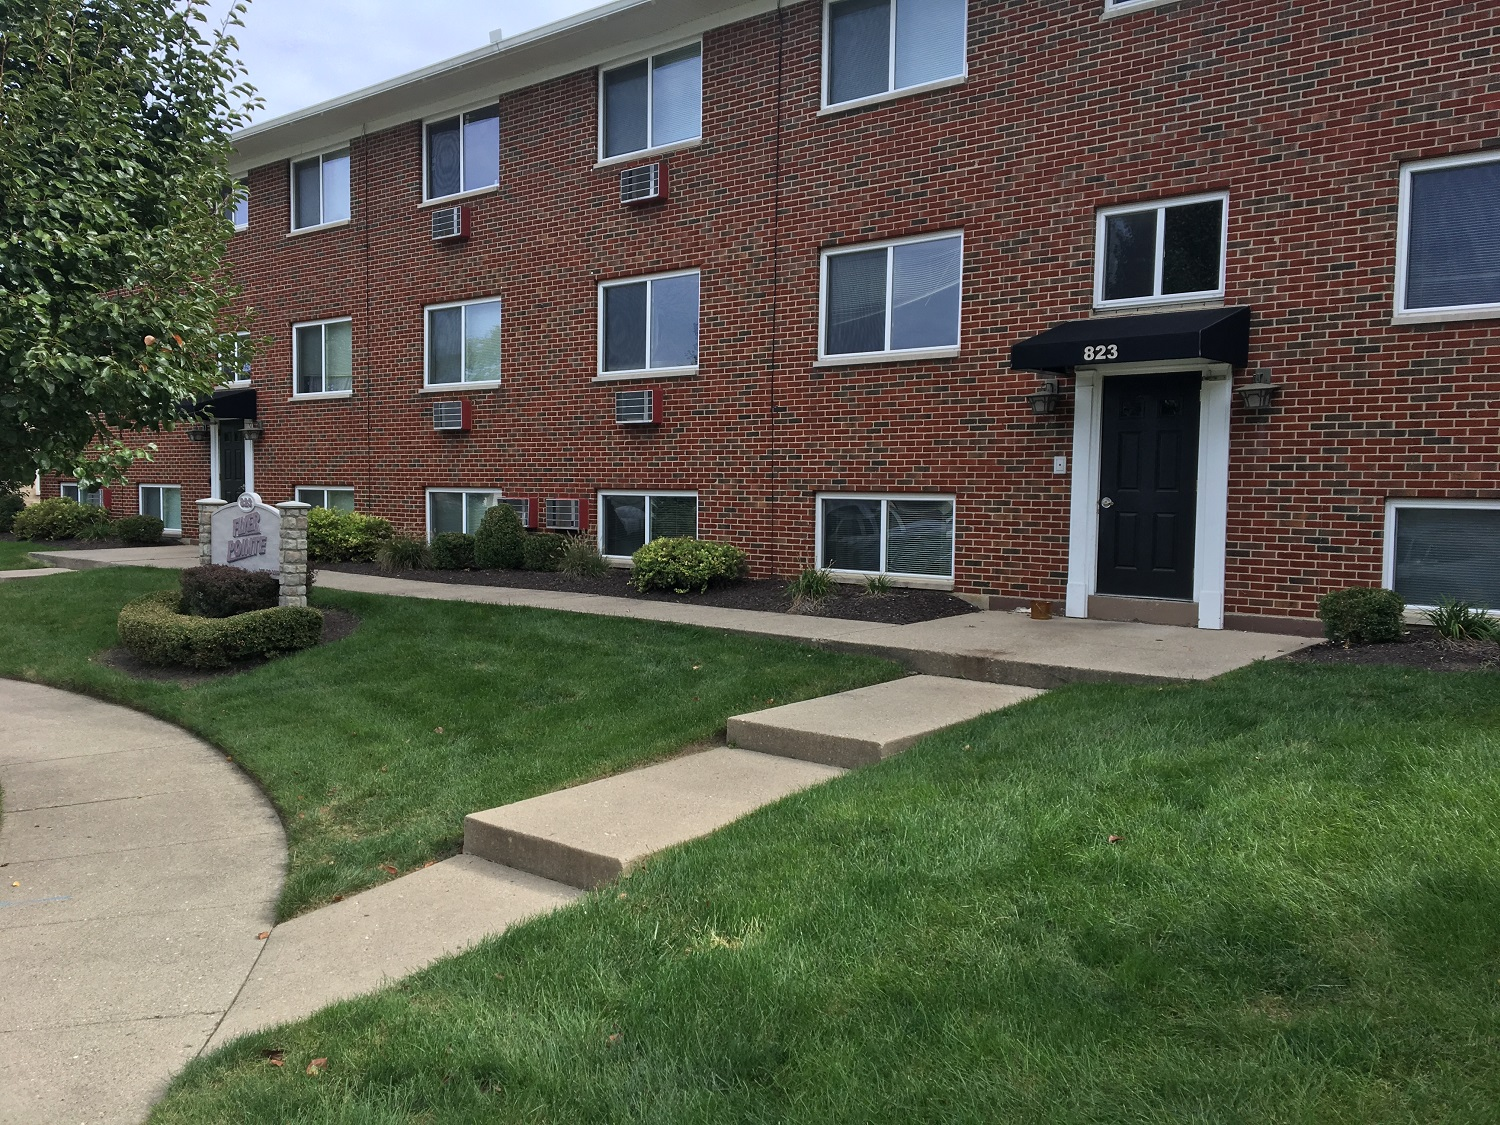 818 fourman court studio1 bed apartment for rent photo gallery 2 - 4 Bedroom Houses For Rent In Dayton Ohio